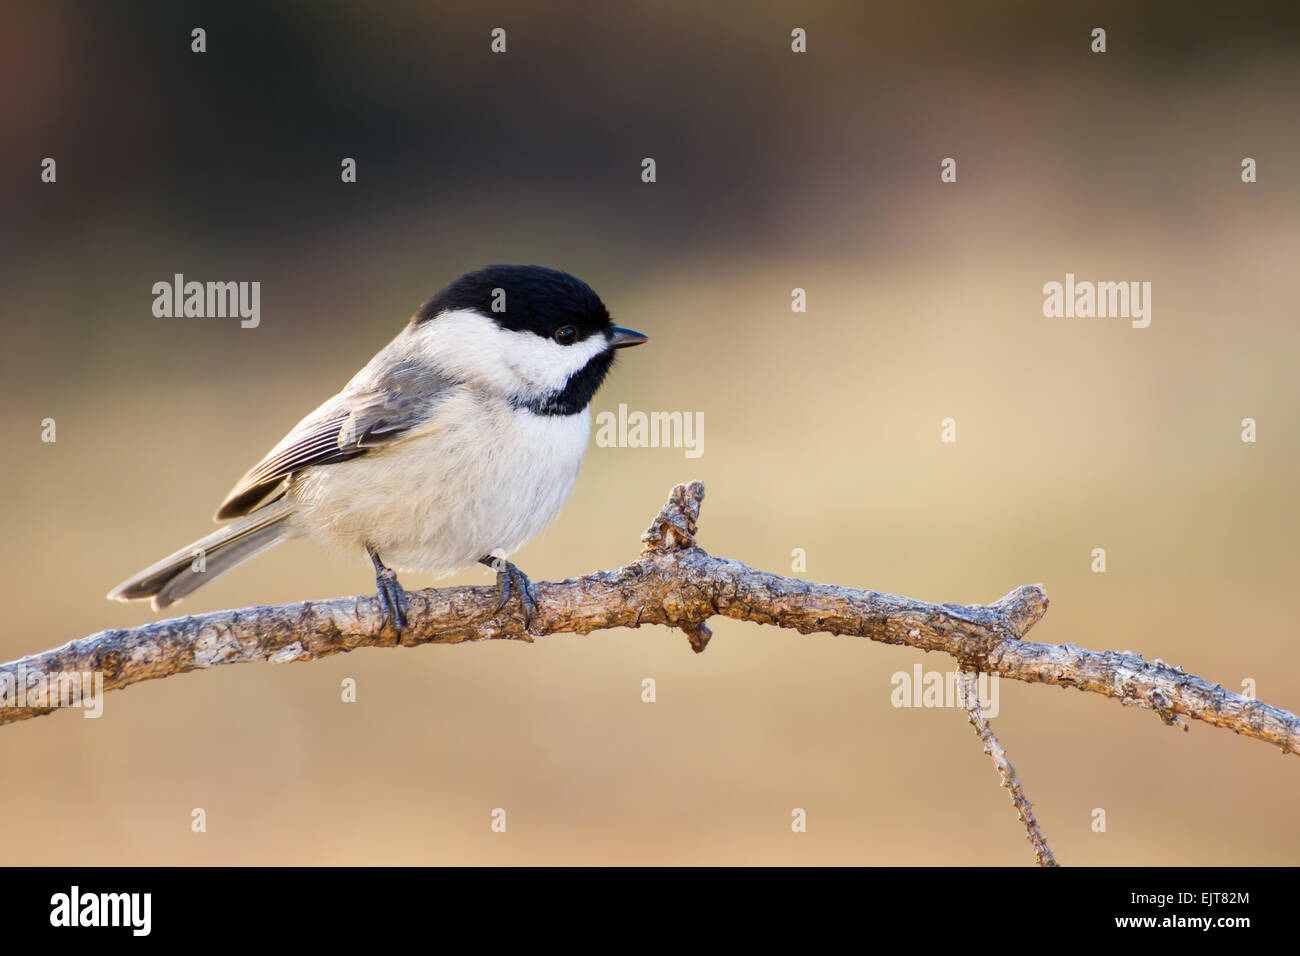 A Carolina chickadee perched in morning sunshine. - Stock Image